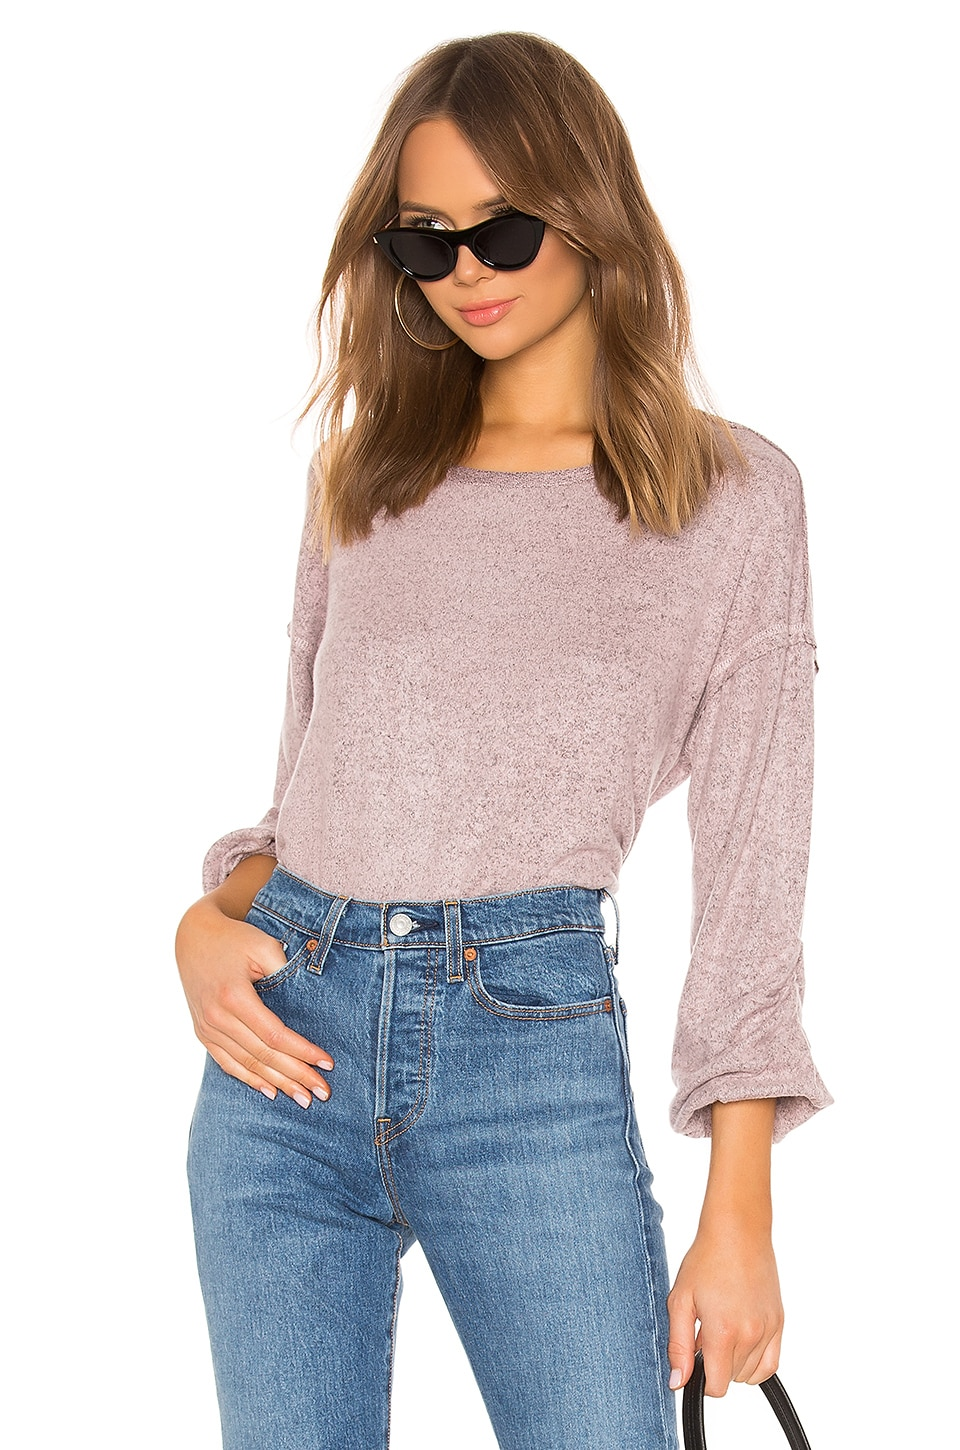 Splendid Addison Jersey Top in Heather Pink